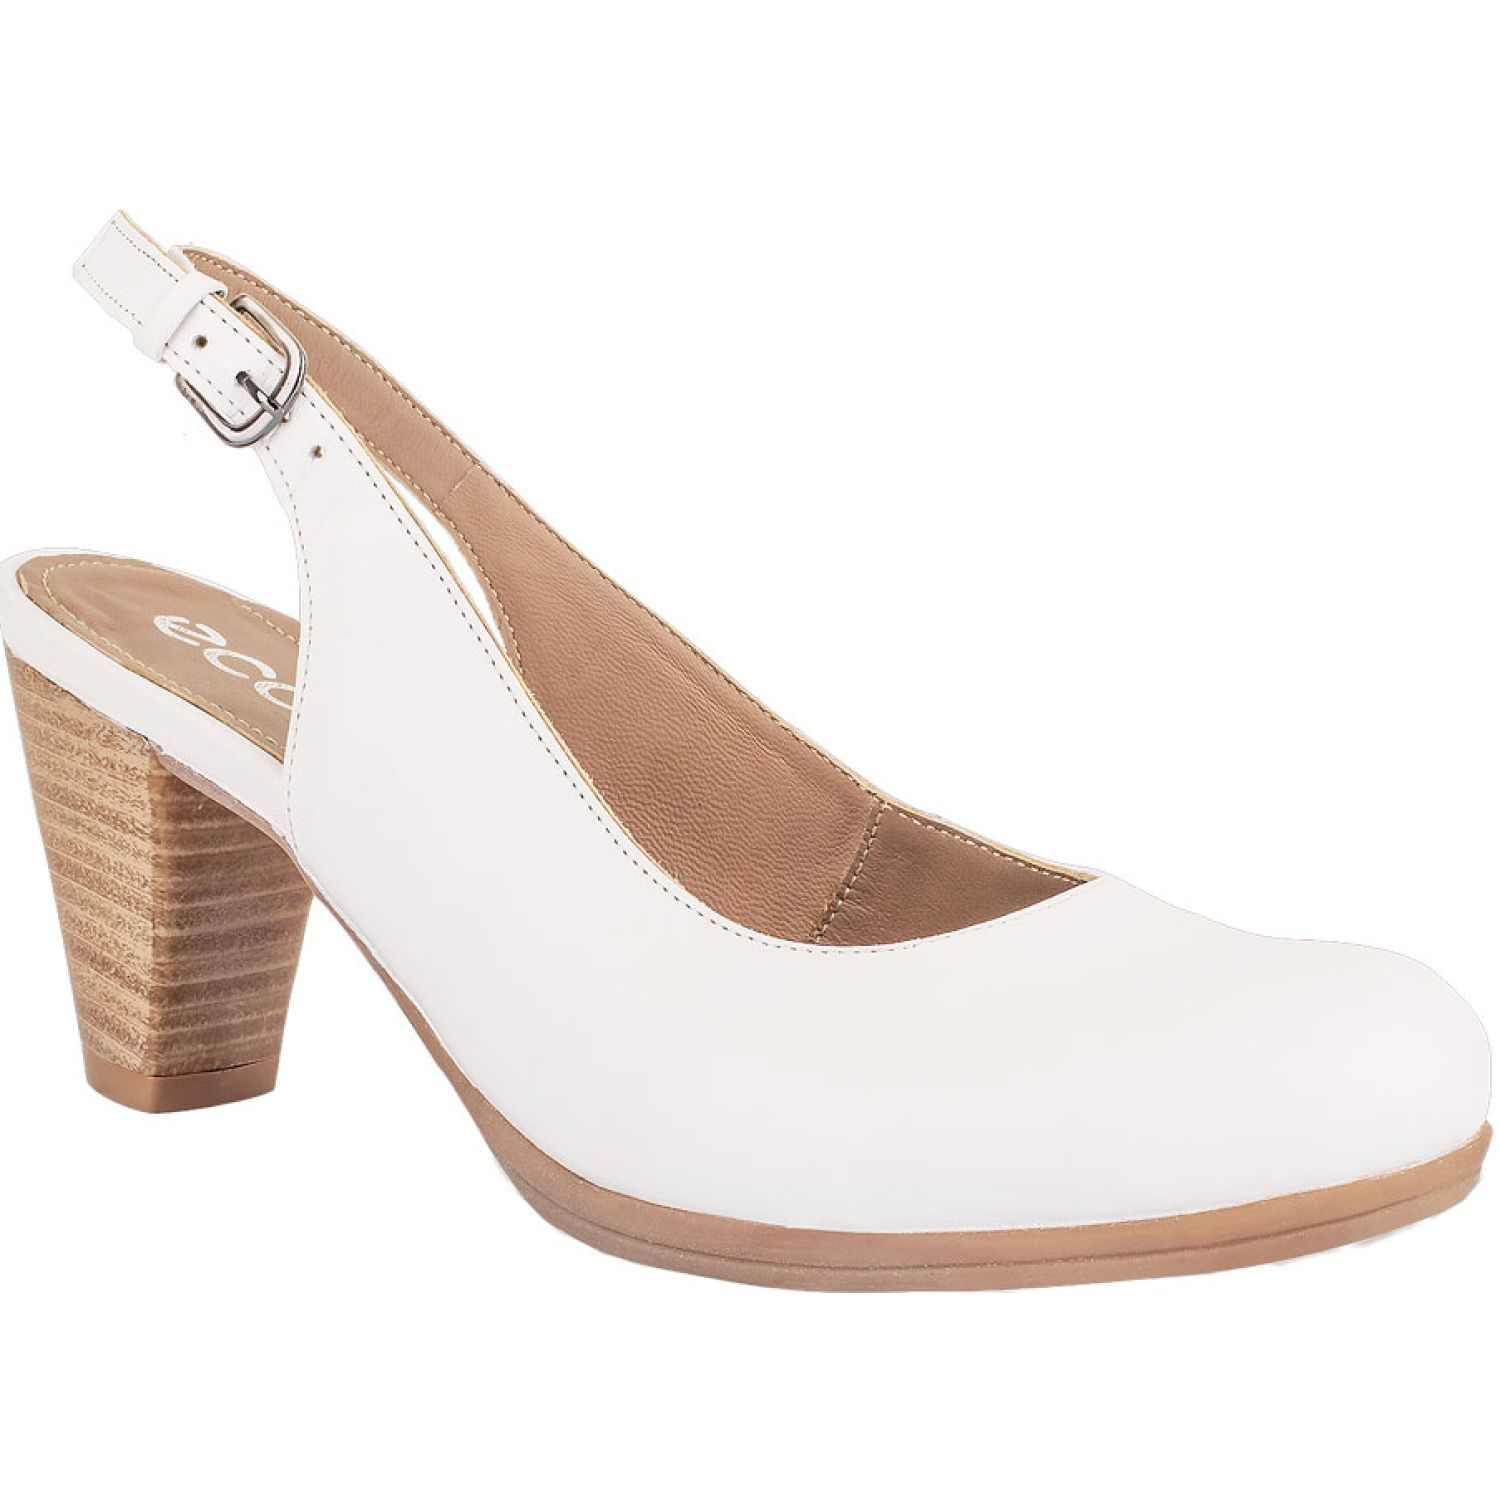 Ecco dalila33 Blanco Estiletos y Pumps